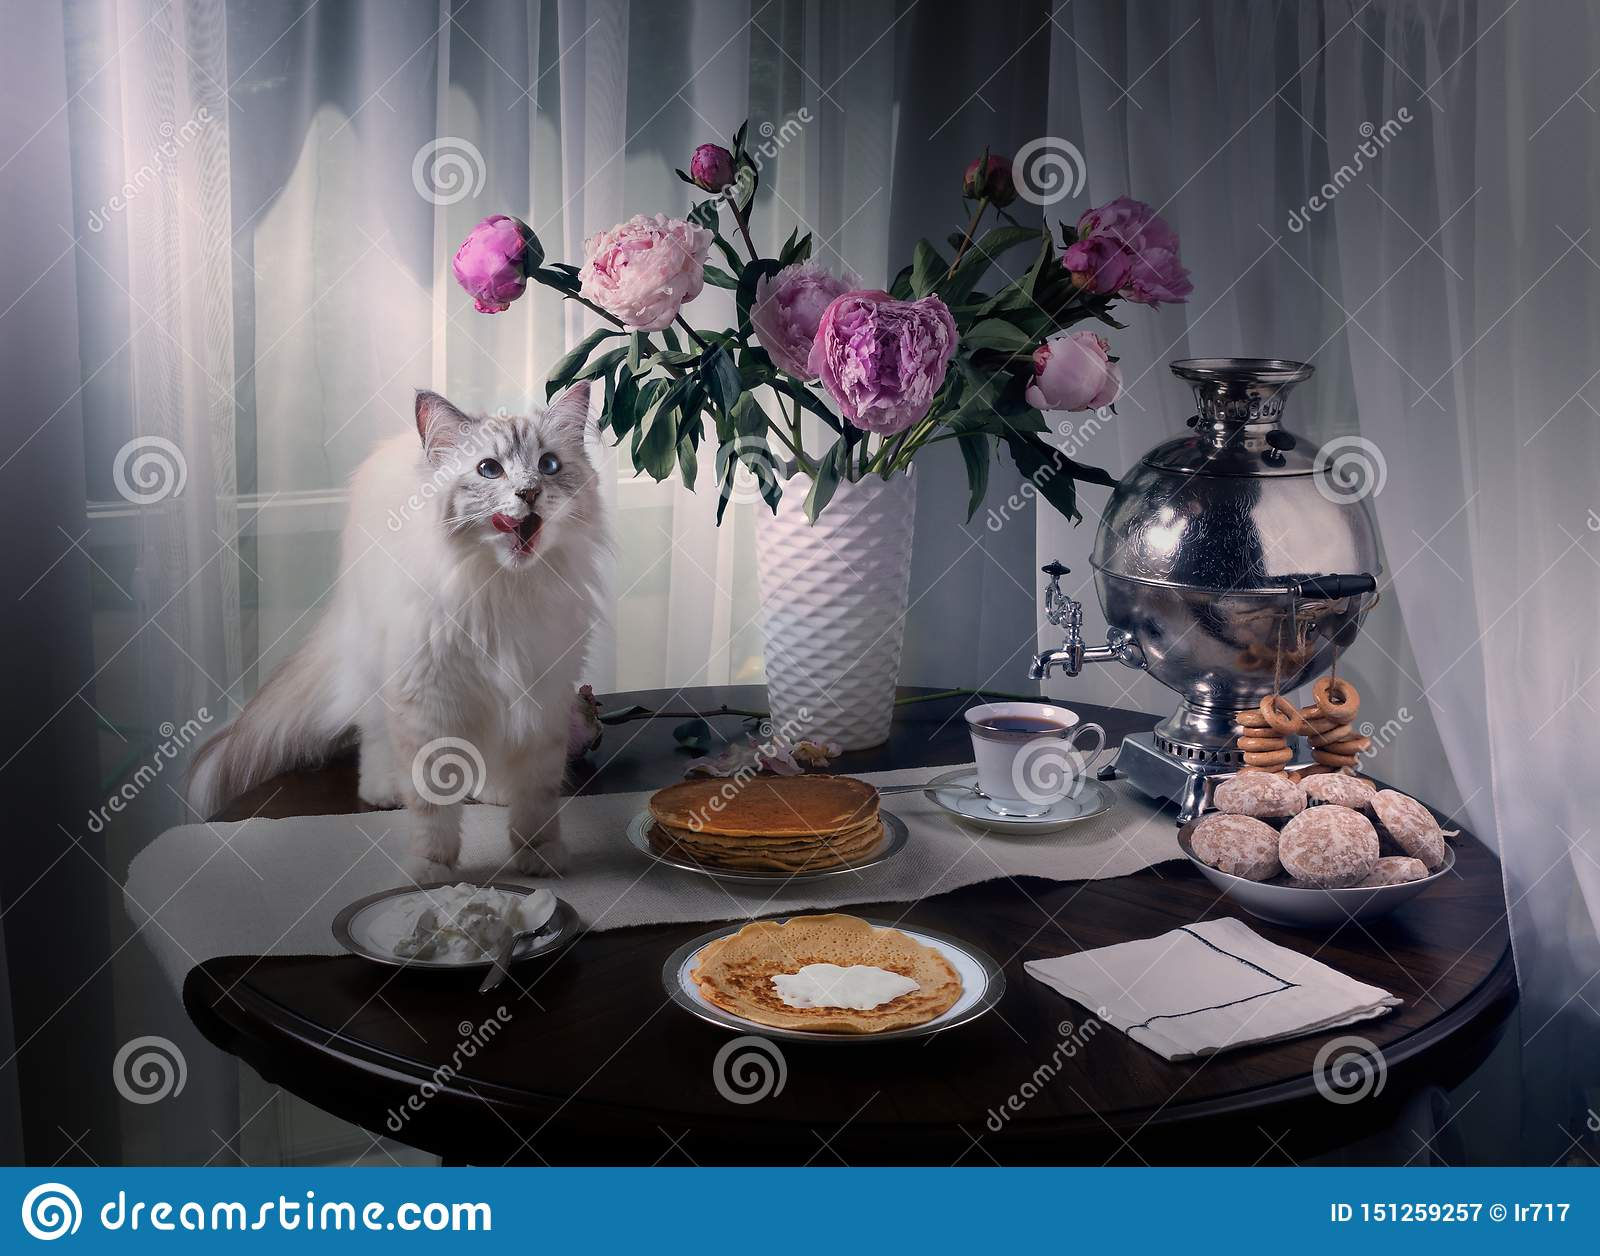 Russian Siberian cat climbed on the table and licked. On the table samovar, pancakes, sour cream and tea